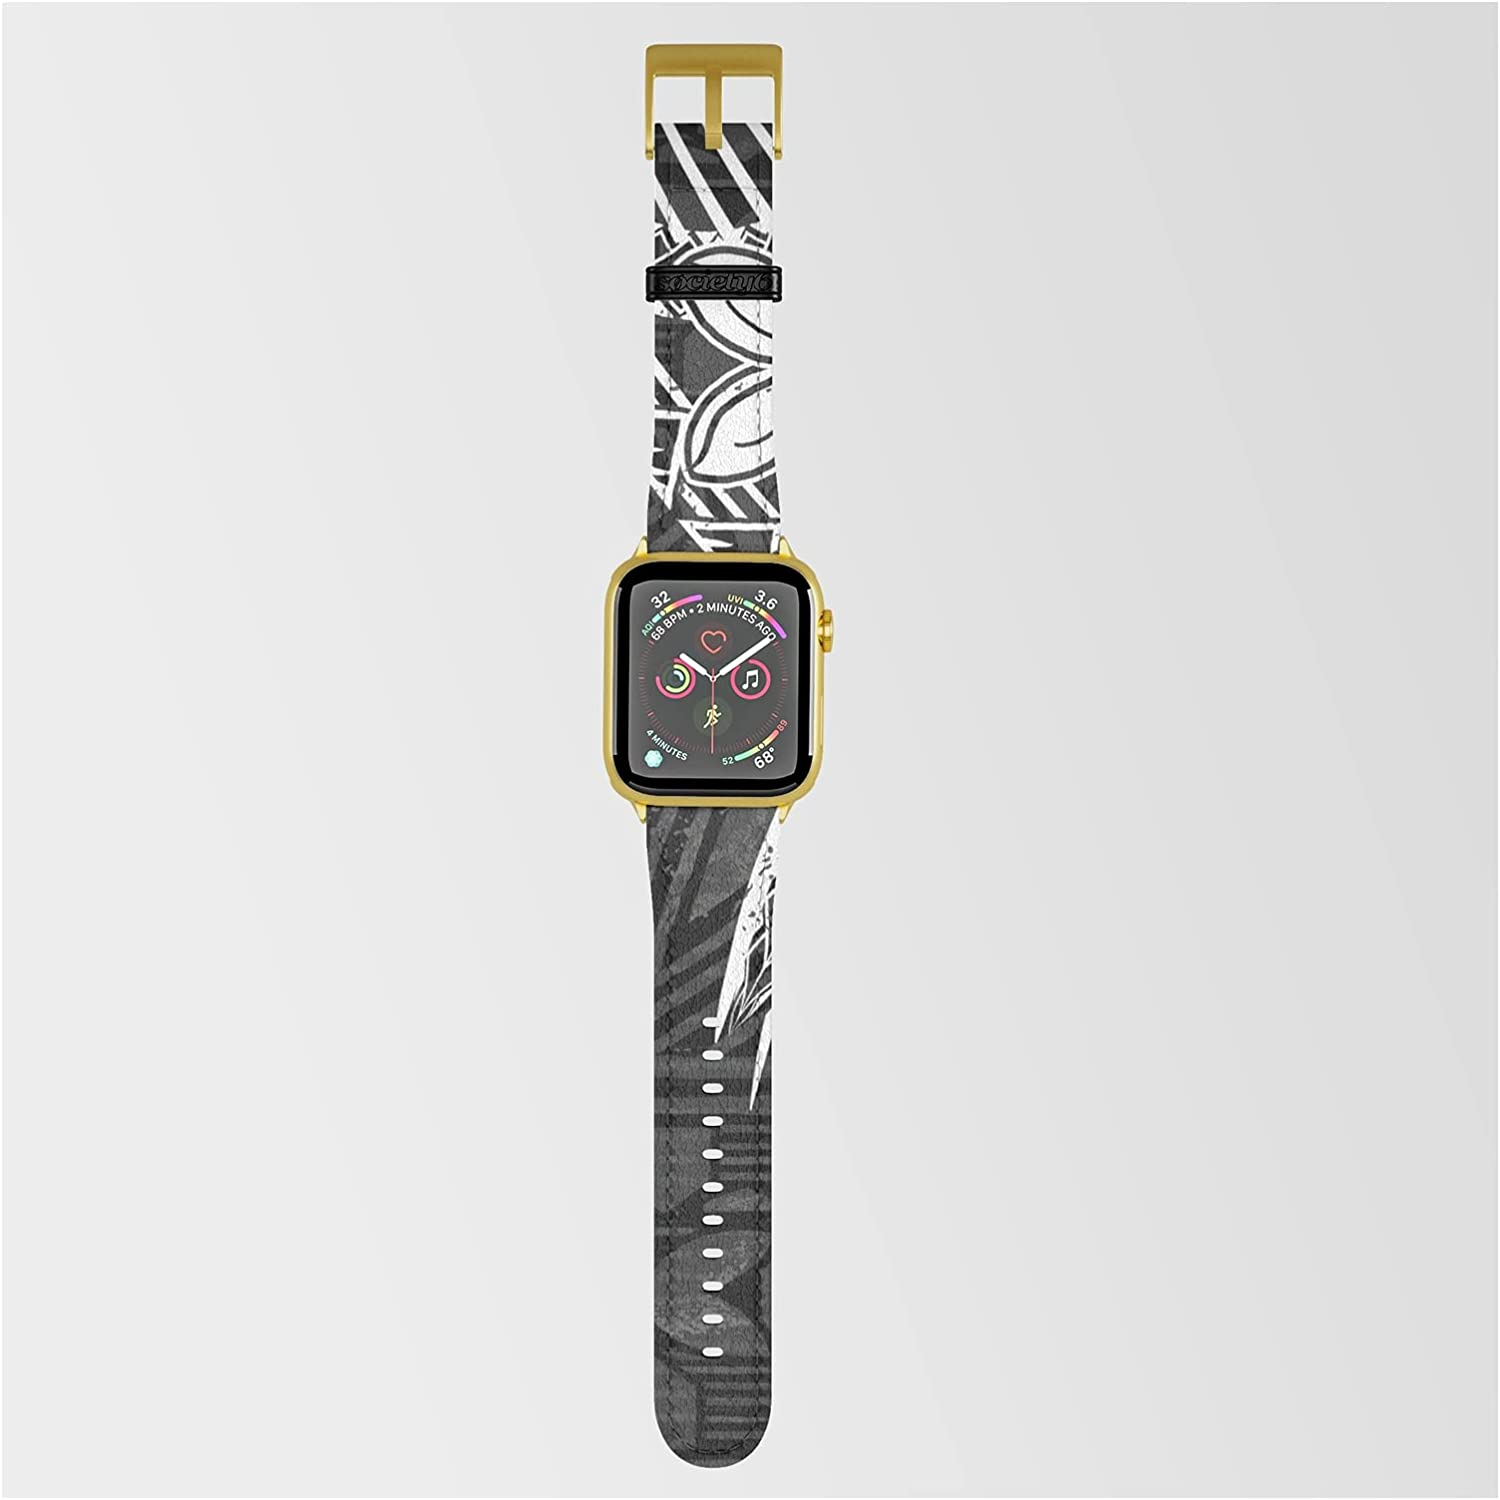 Vintage Max 90% OFF Samoan Tapa Print by Sun Translated on Threads Band Co Smartwatch N